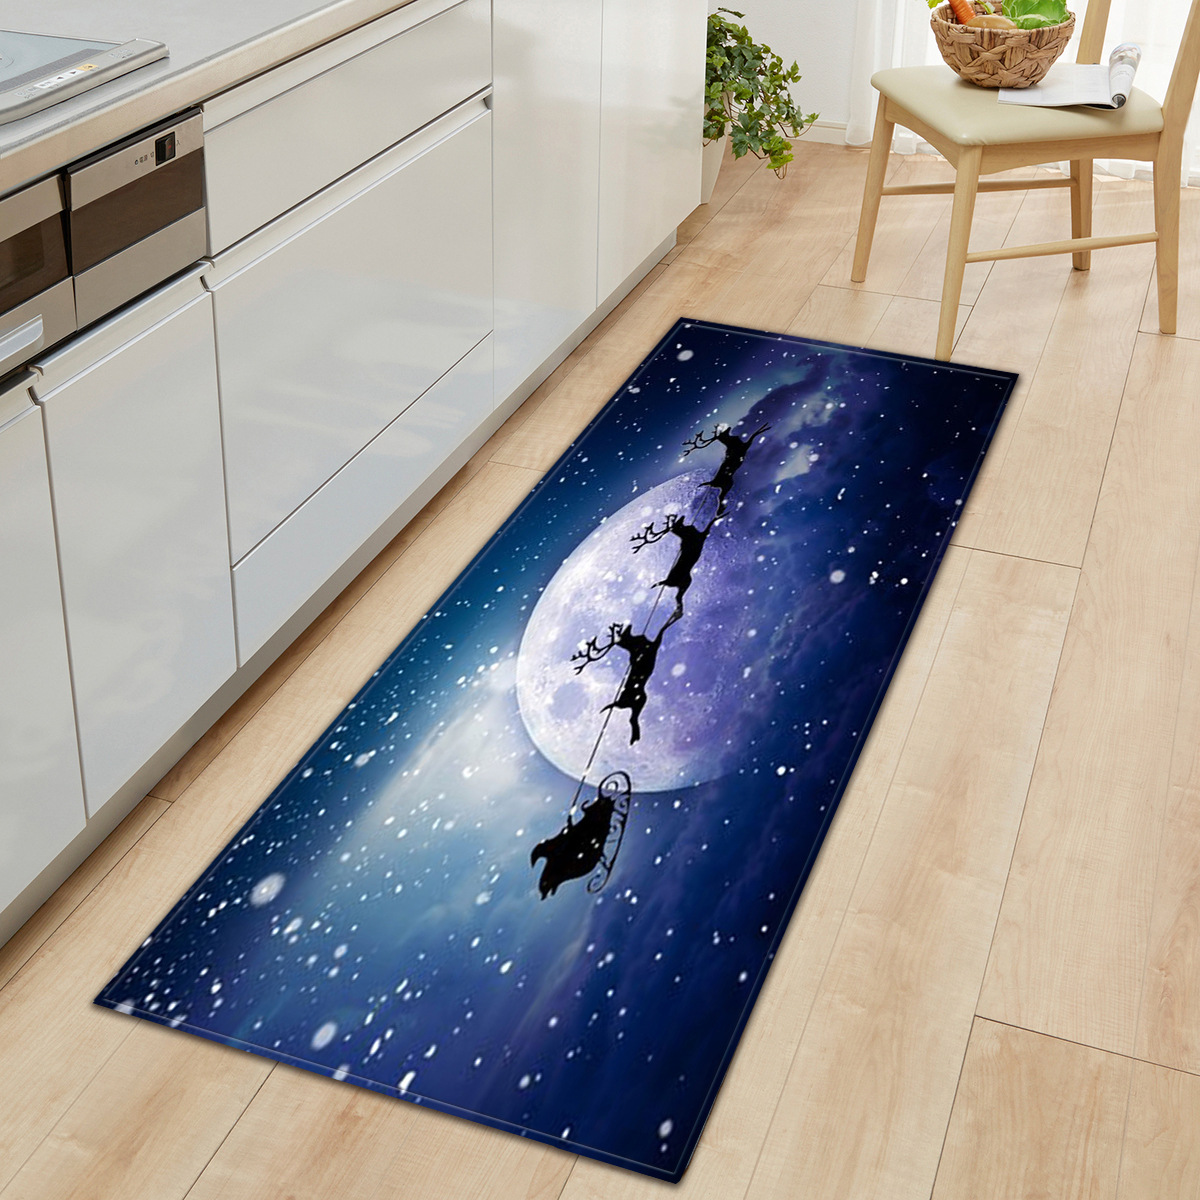 Picture of: 3 D Christmas Kitchen Area Rug Soft Flannel Floor Mat For Home Bedroom Living Room Non Slip Xmas Rug Bath Mats Aliexpress